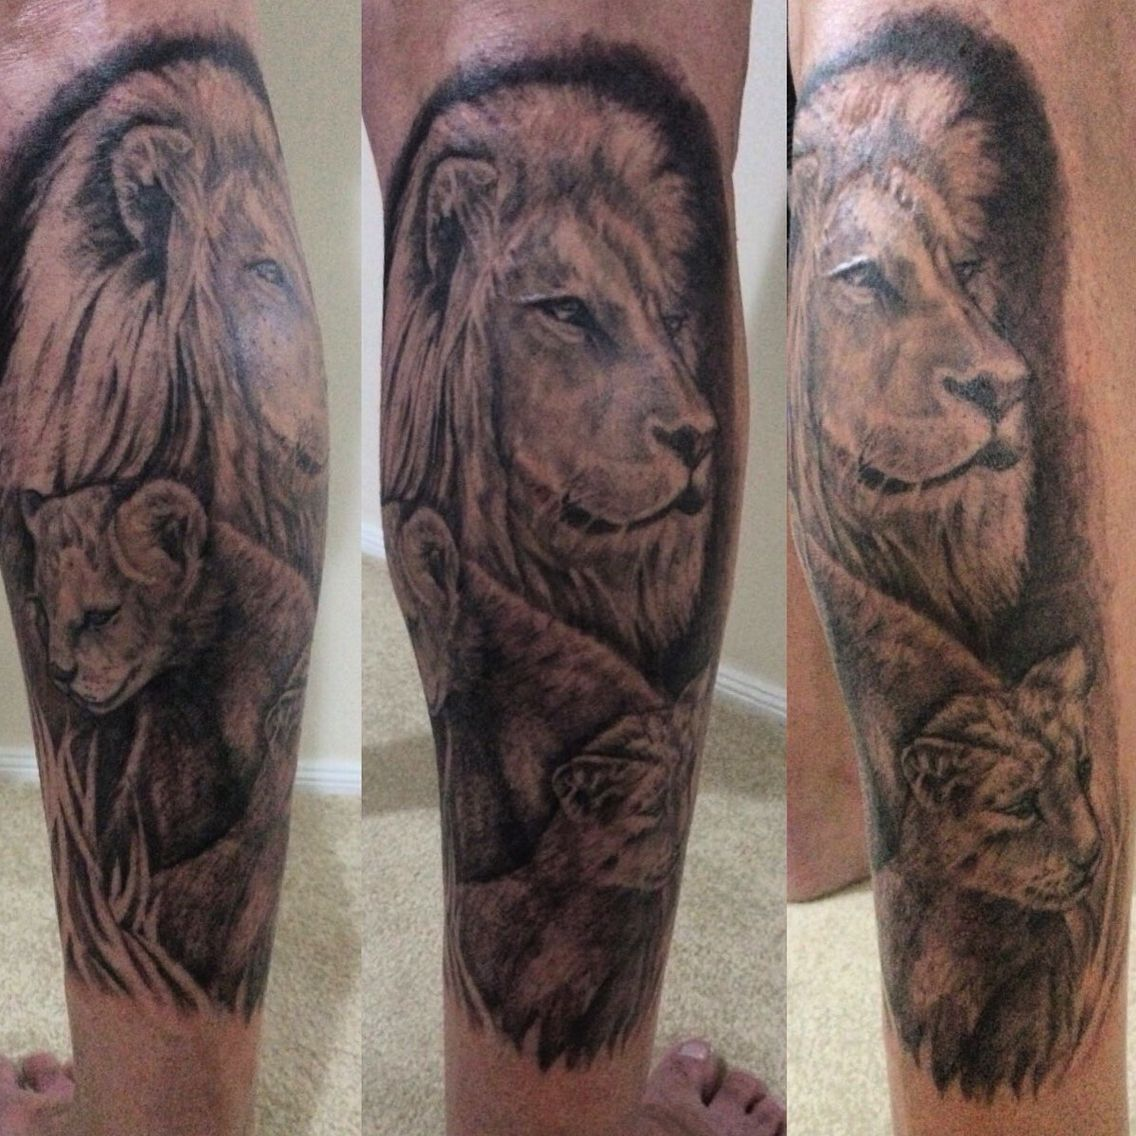 Lion And His 2 Cubs Symbolises Myself And My 2 Children Chloe Adam Vassallo Nothing Is Better Than A Father S Love Cubs Tattoo Tattoos Lion Tattoo